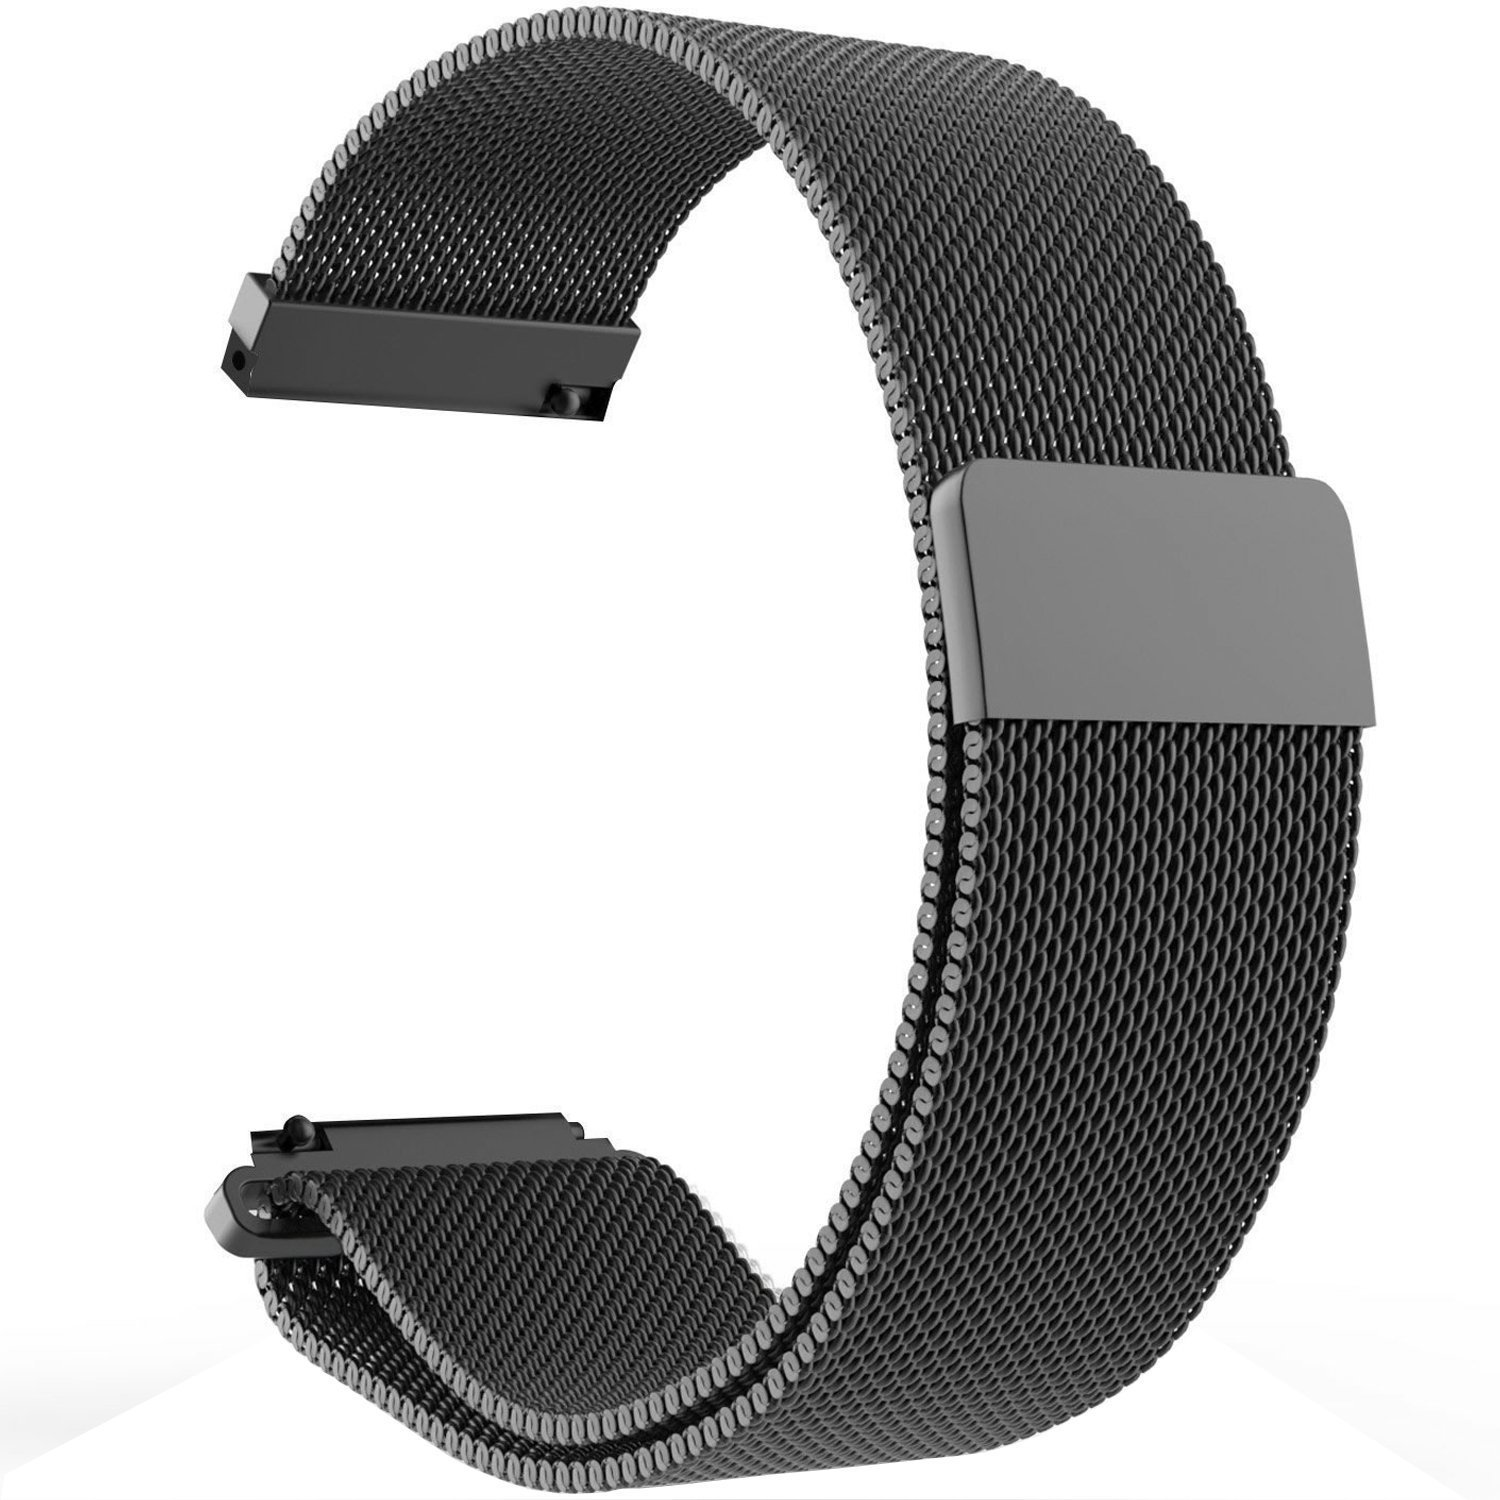 Replacement Women Metal Watch Band for Withings Activite,Asus ZenWatch 2 1.45